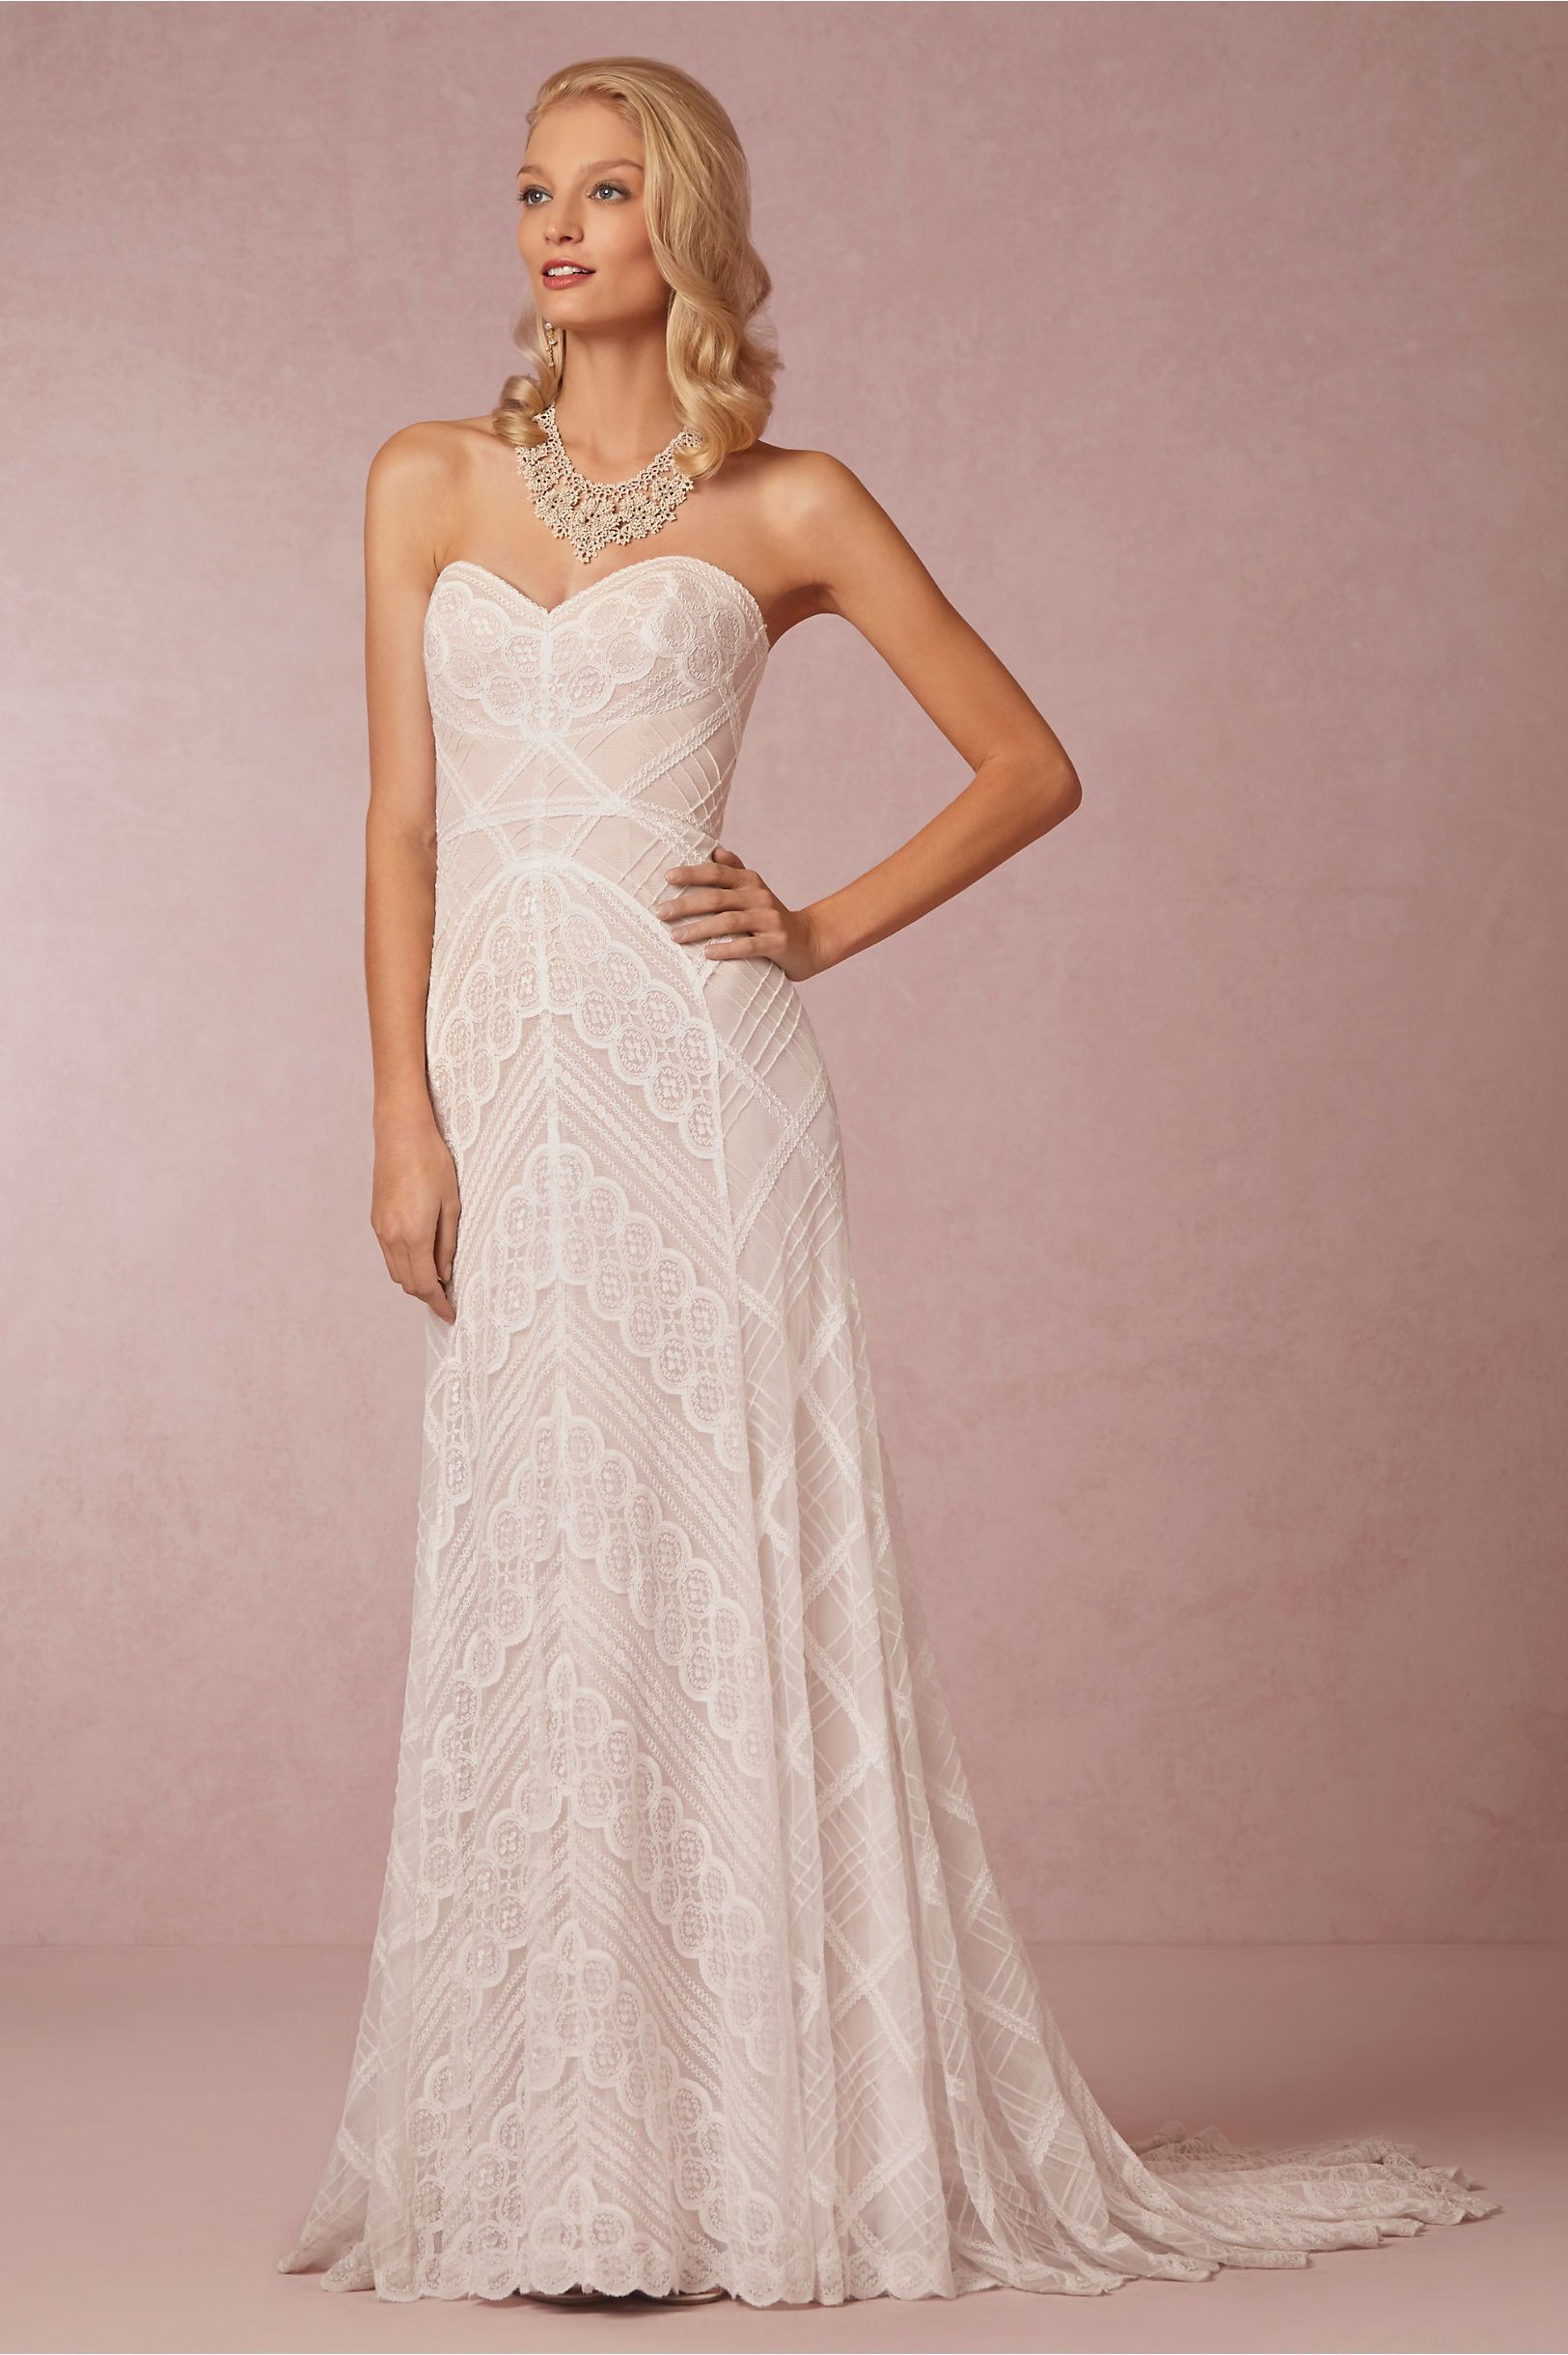 Gigi Gown Featuring A Strapless Neckline And Blush Lined Ivory Lace That Sweeps From